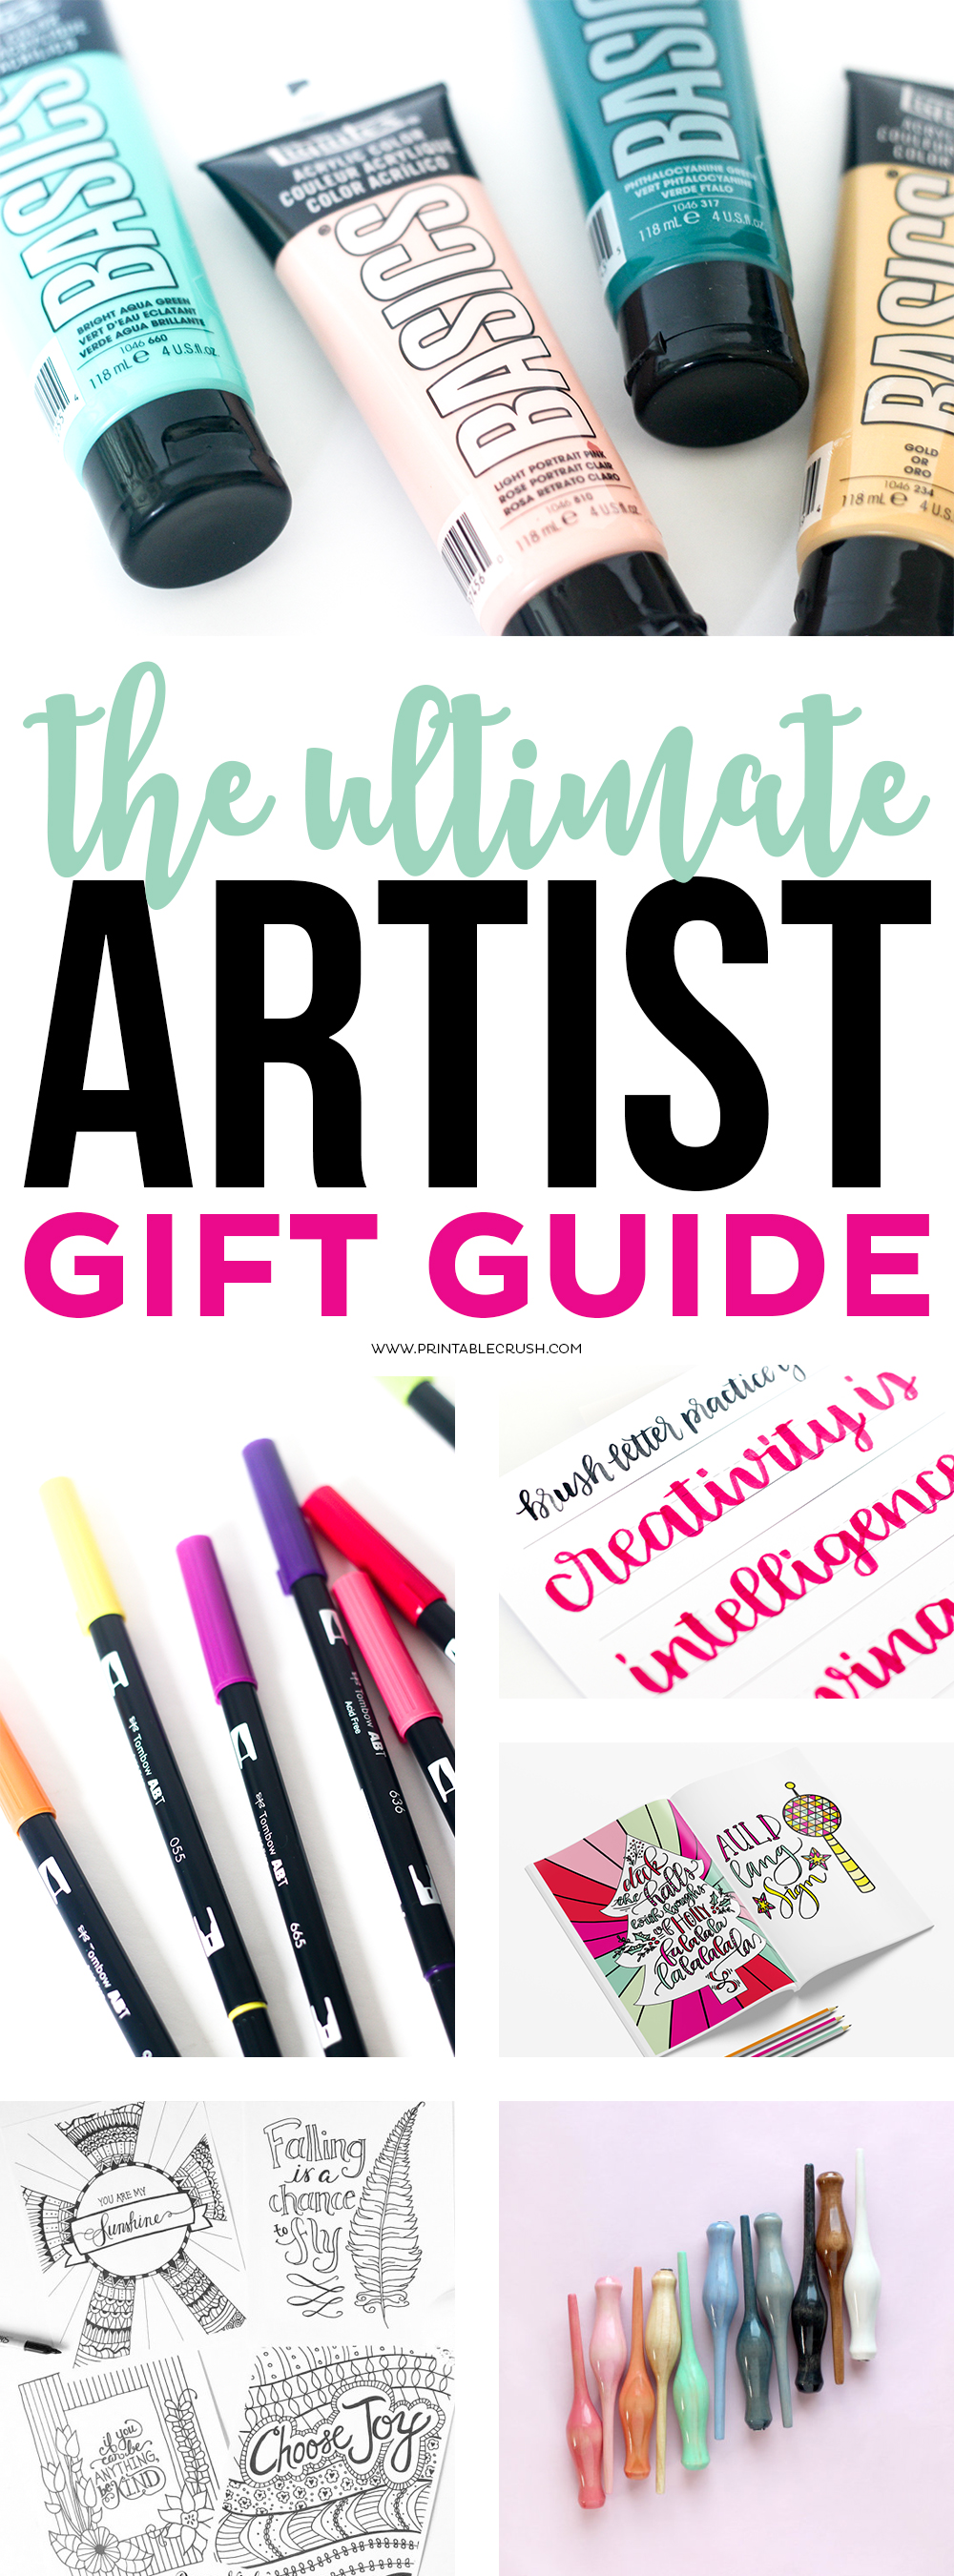 The Ultimate Artist Gift Guide - Printable Crush